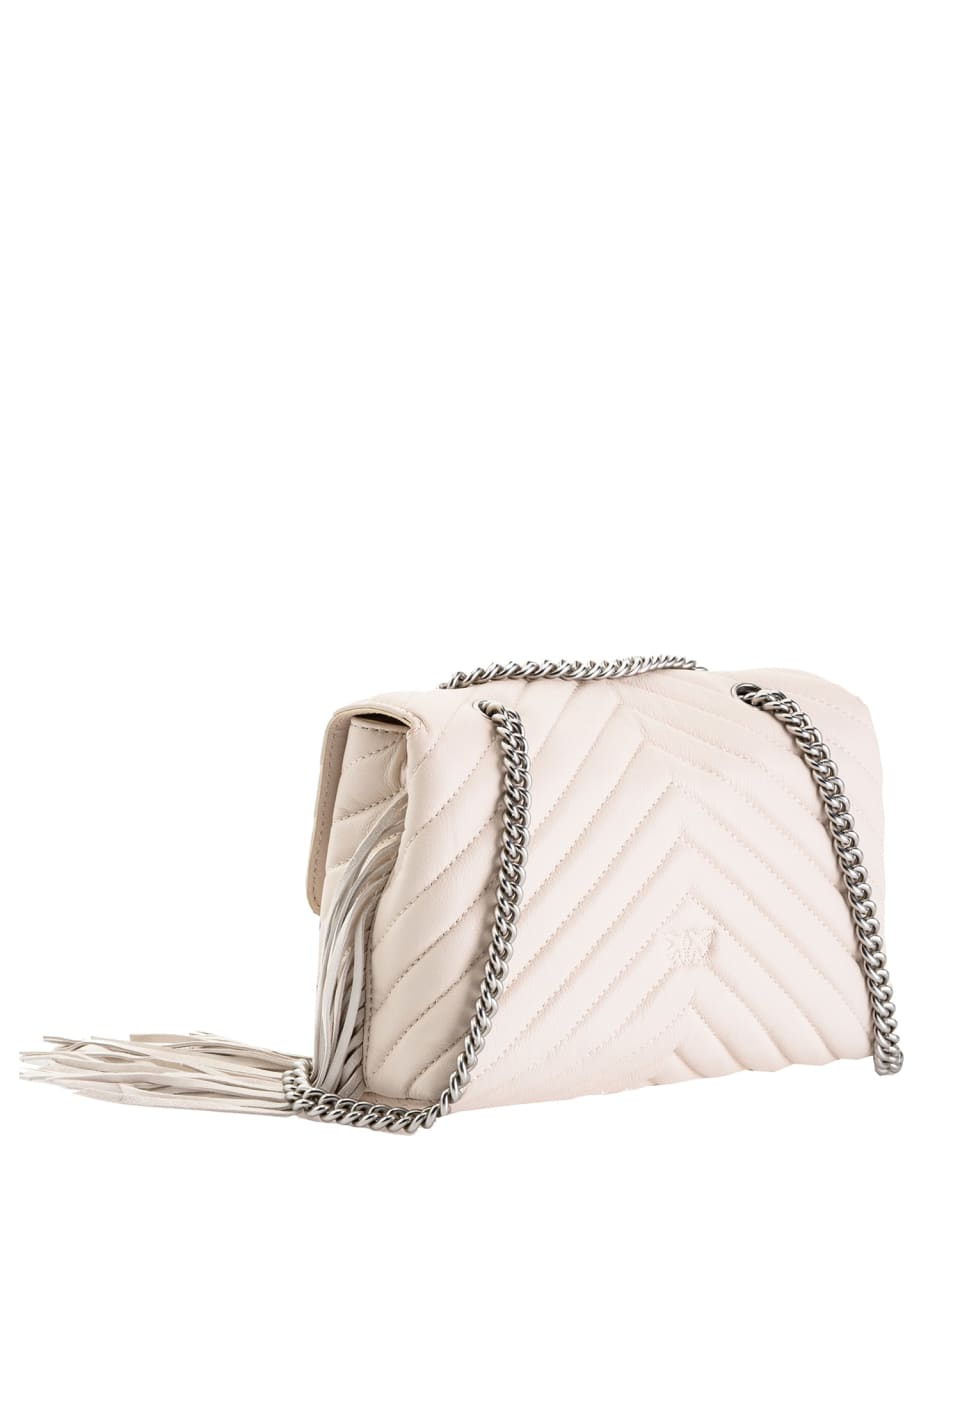 Love Bag Puff Fringes in nappa leather - Pinko